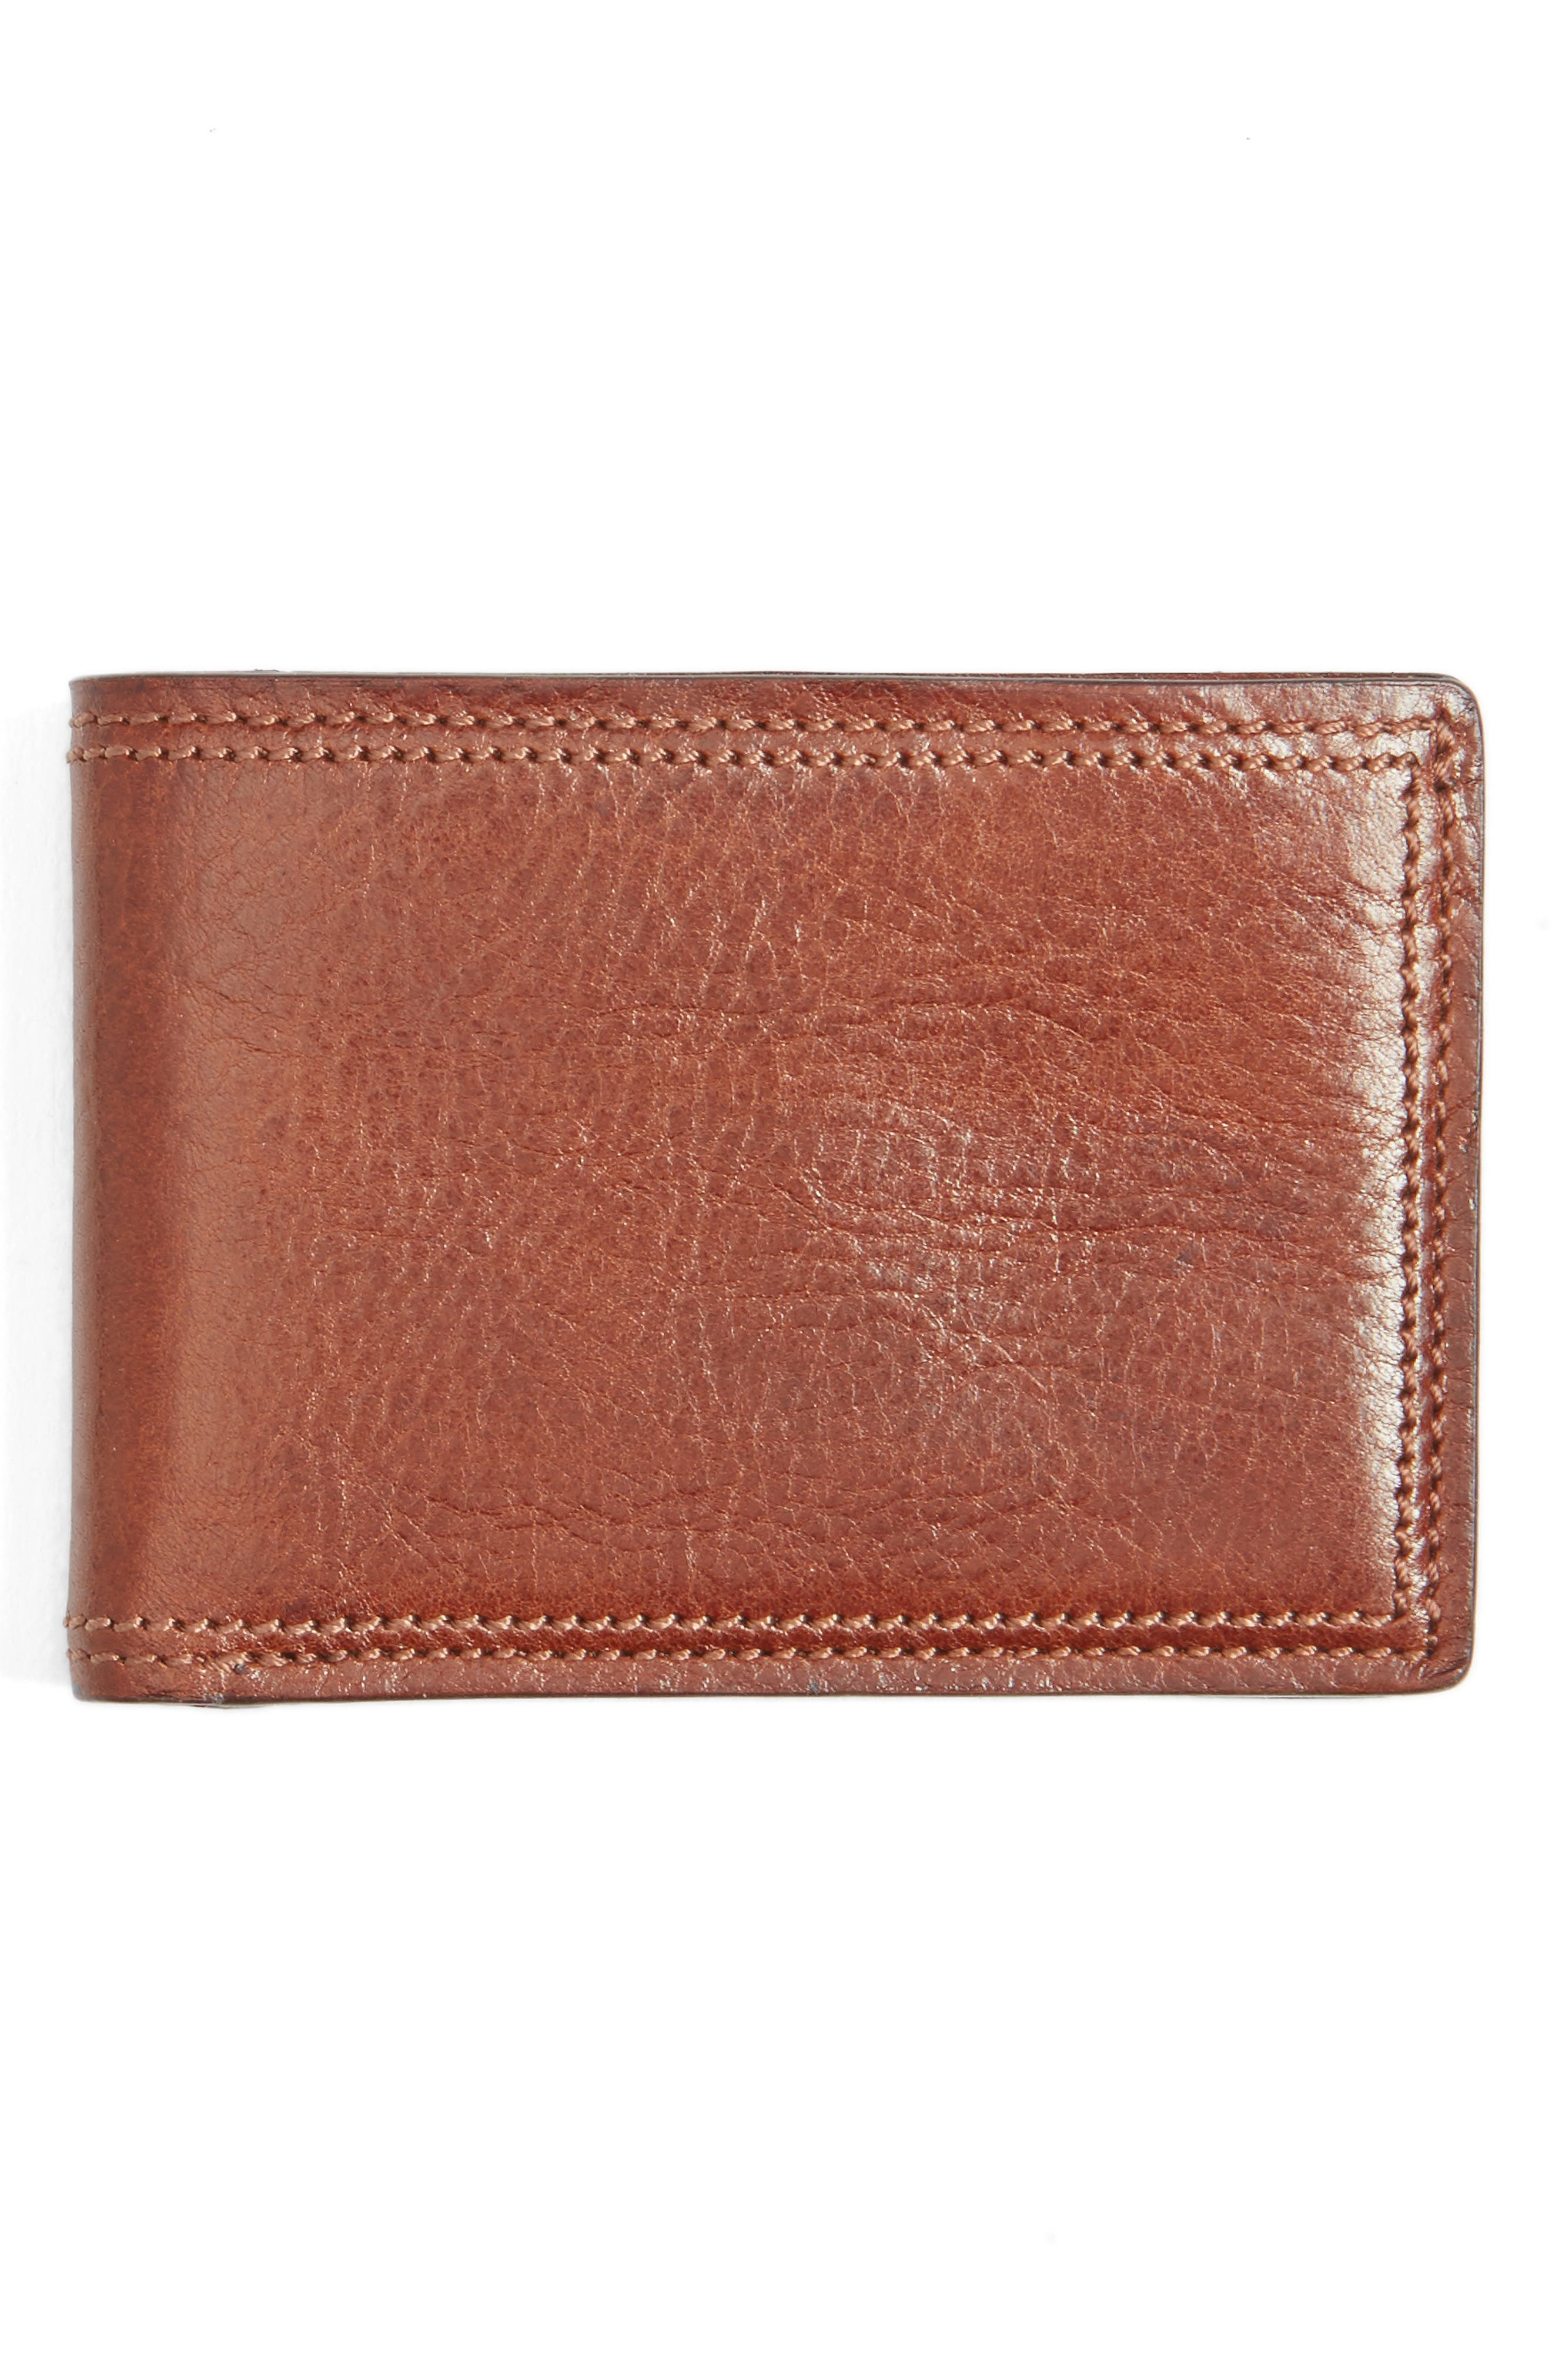 BOSCA,                             Leather Bifold Wallet,                             Main thumbnail 1, color,                             233